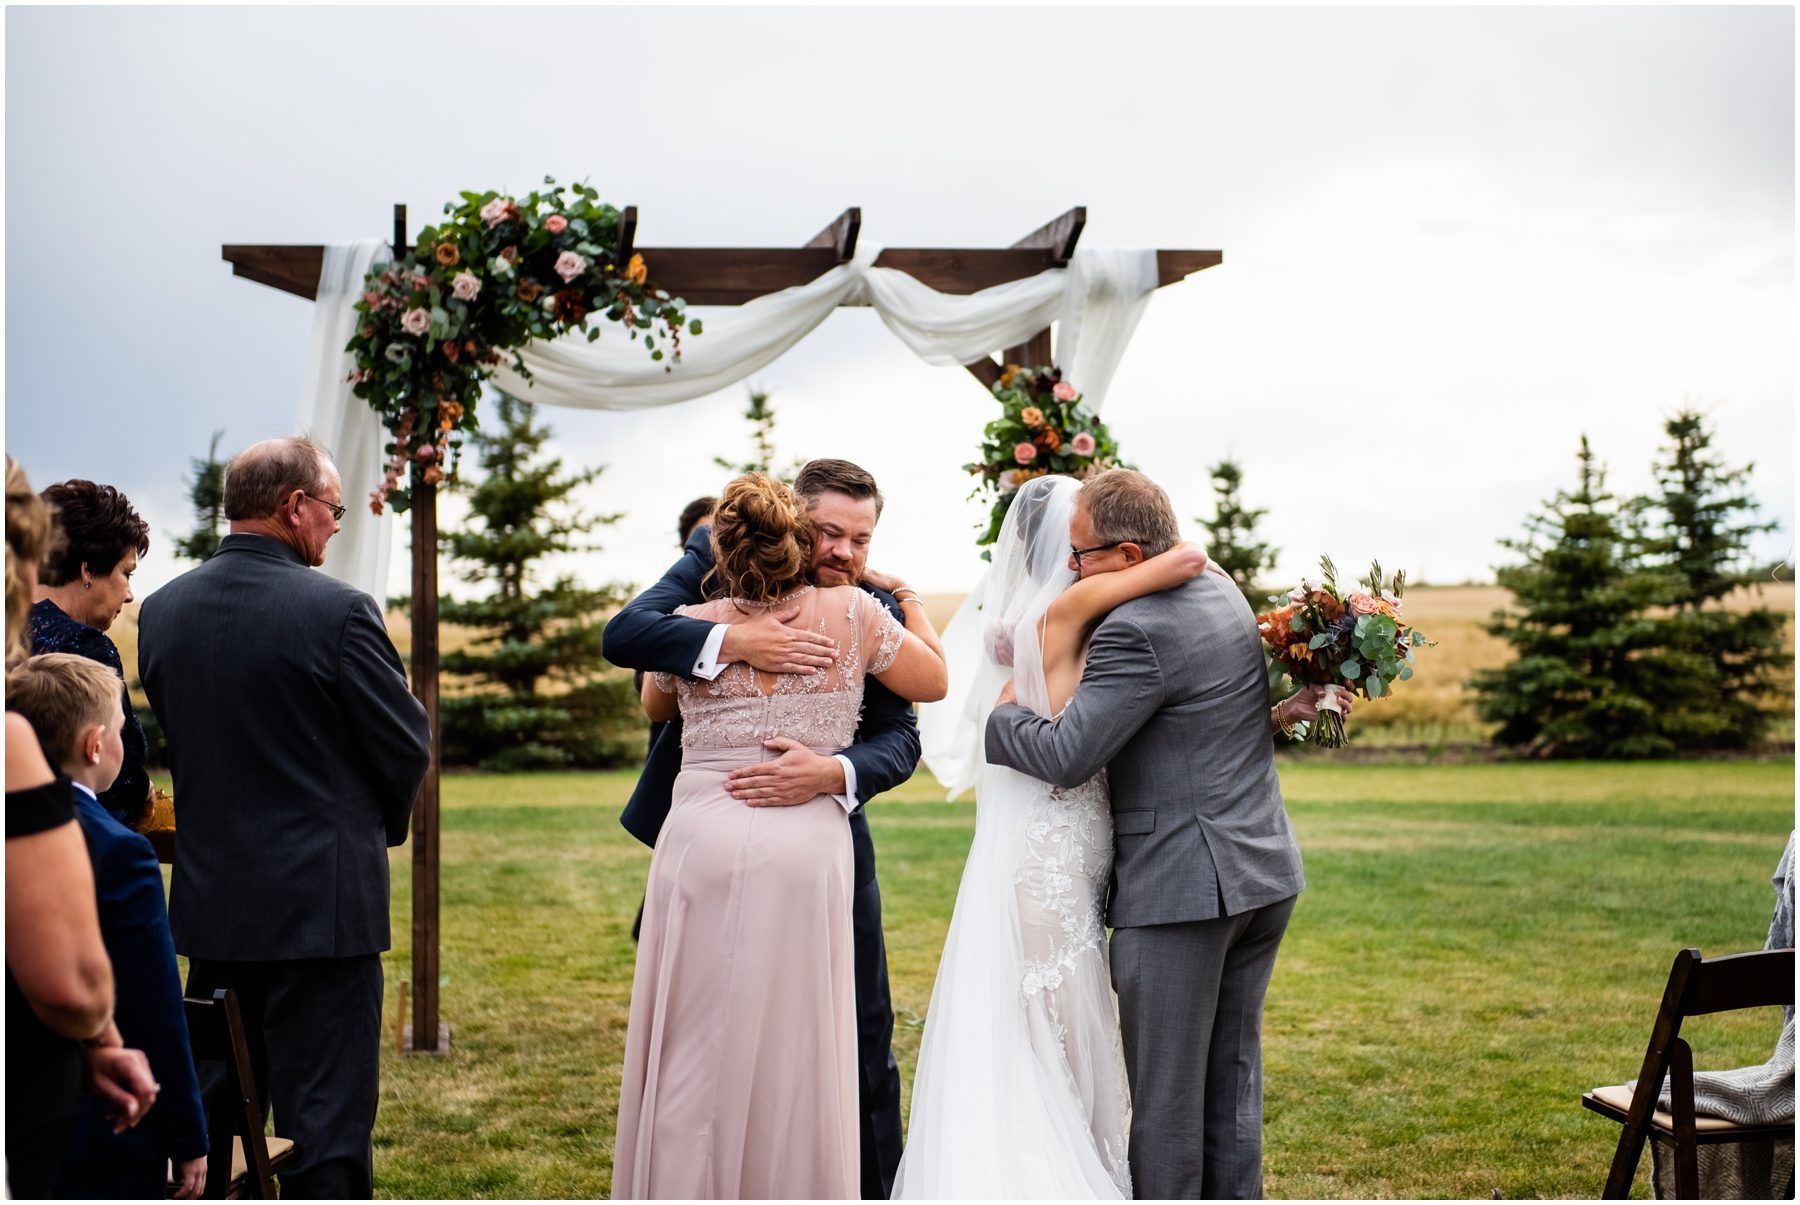 Sweet Haven Barn Wedding Ceremony Photos - Fall Outdoor Wedding